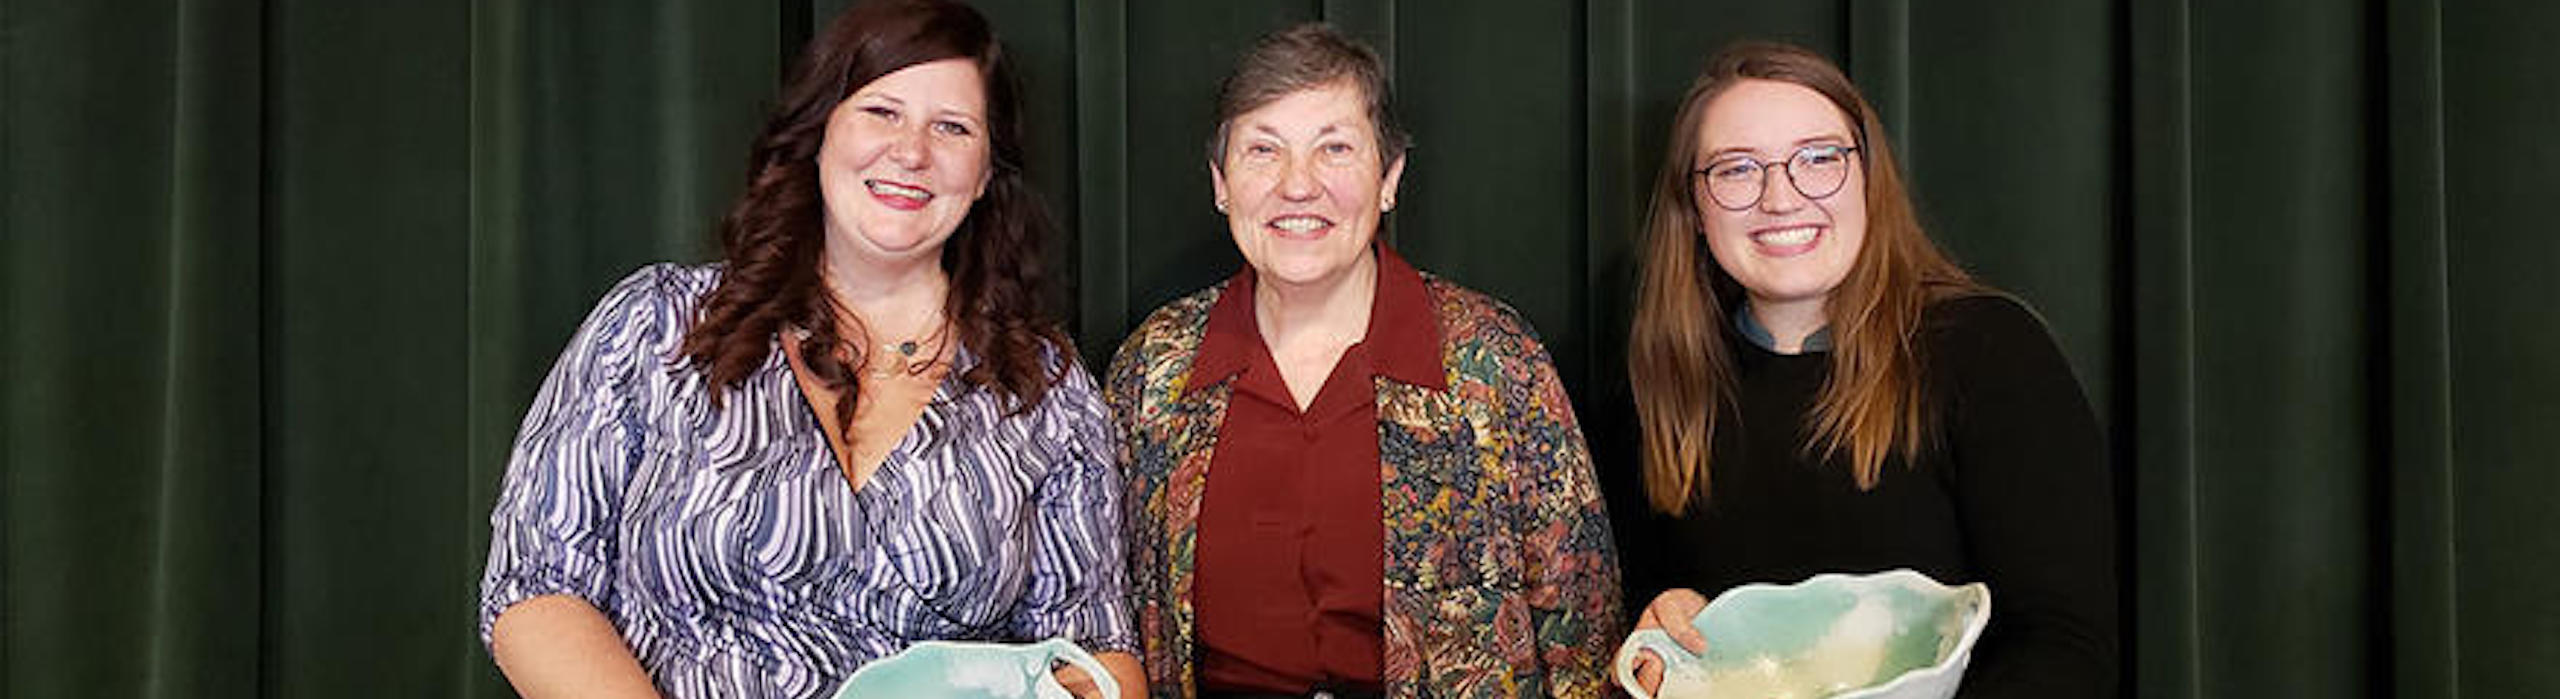 Linda Larson (center) and recipients of the Linda M. Larson Outstanding Woman of the Year Award